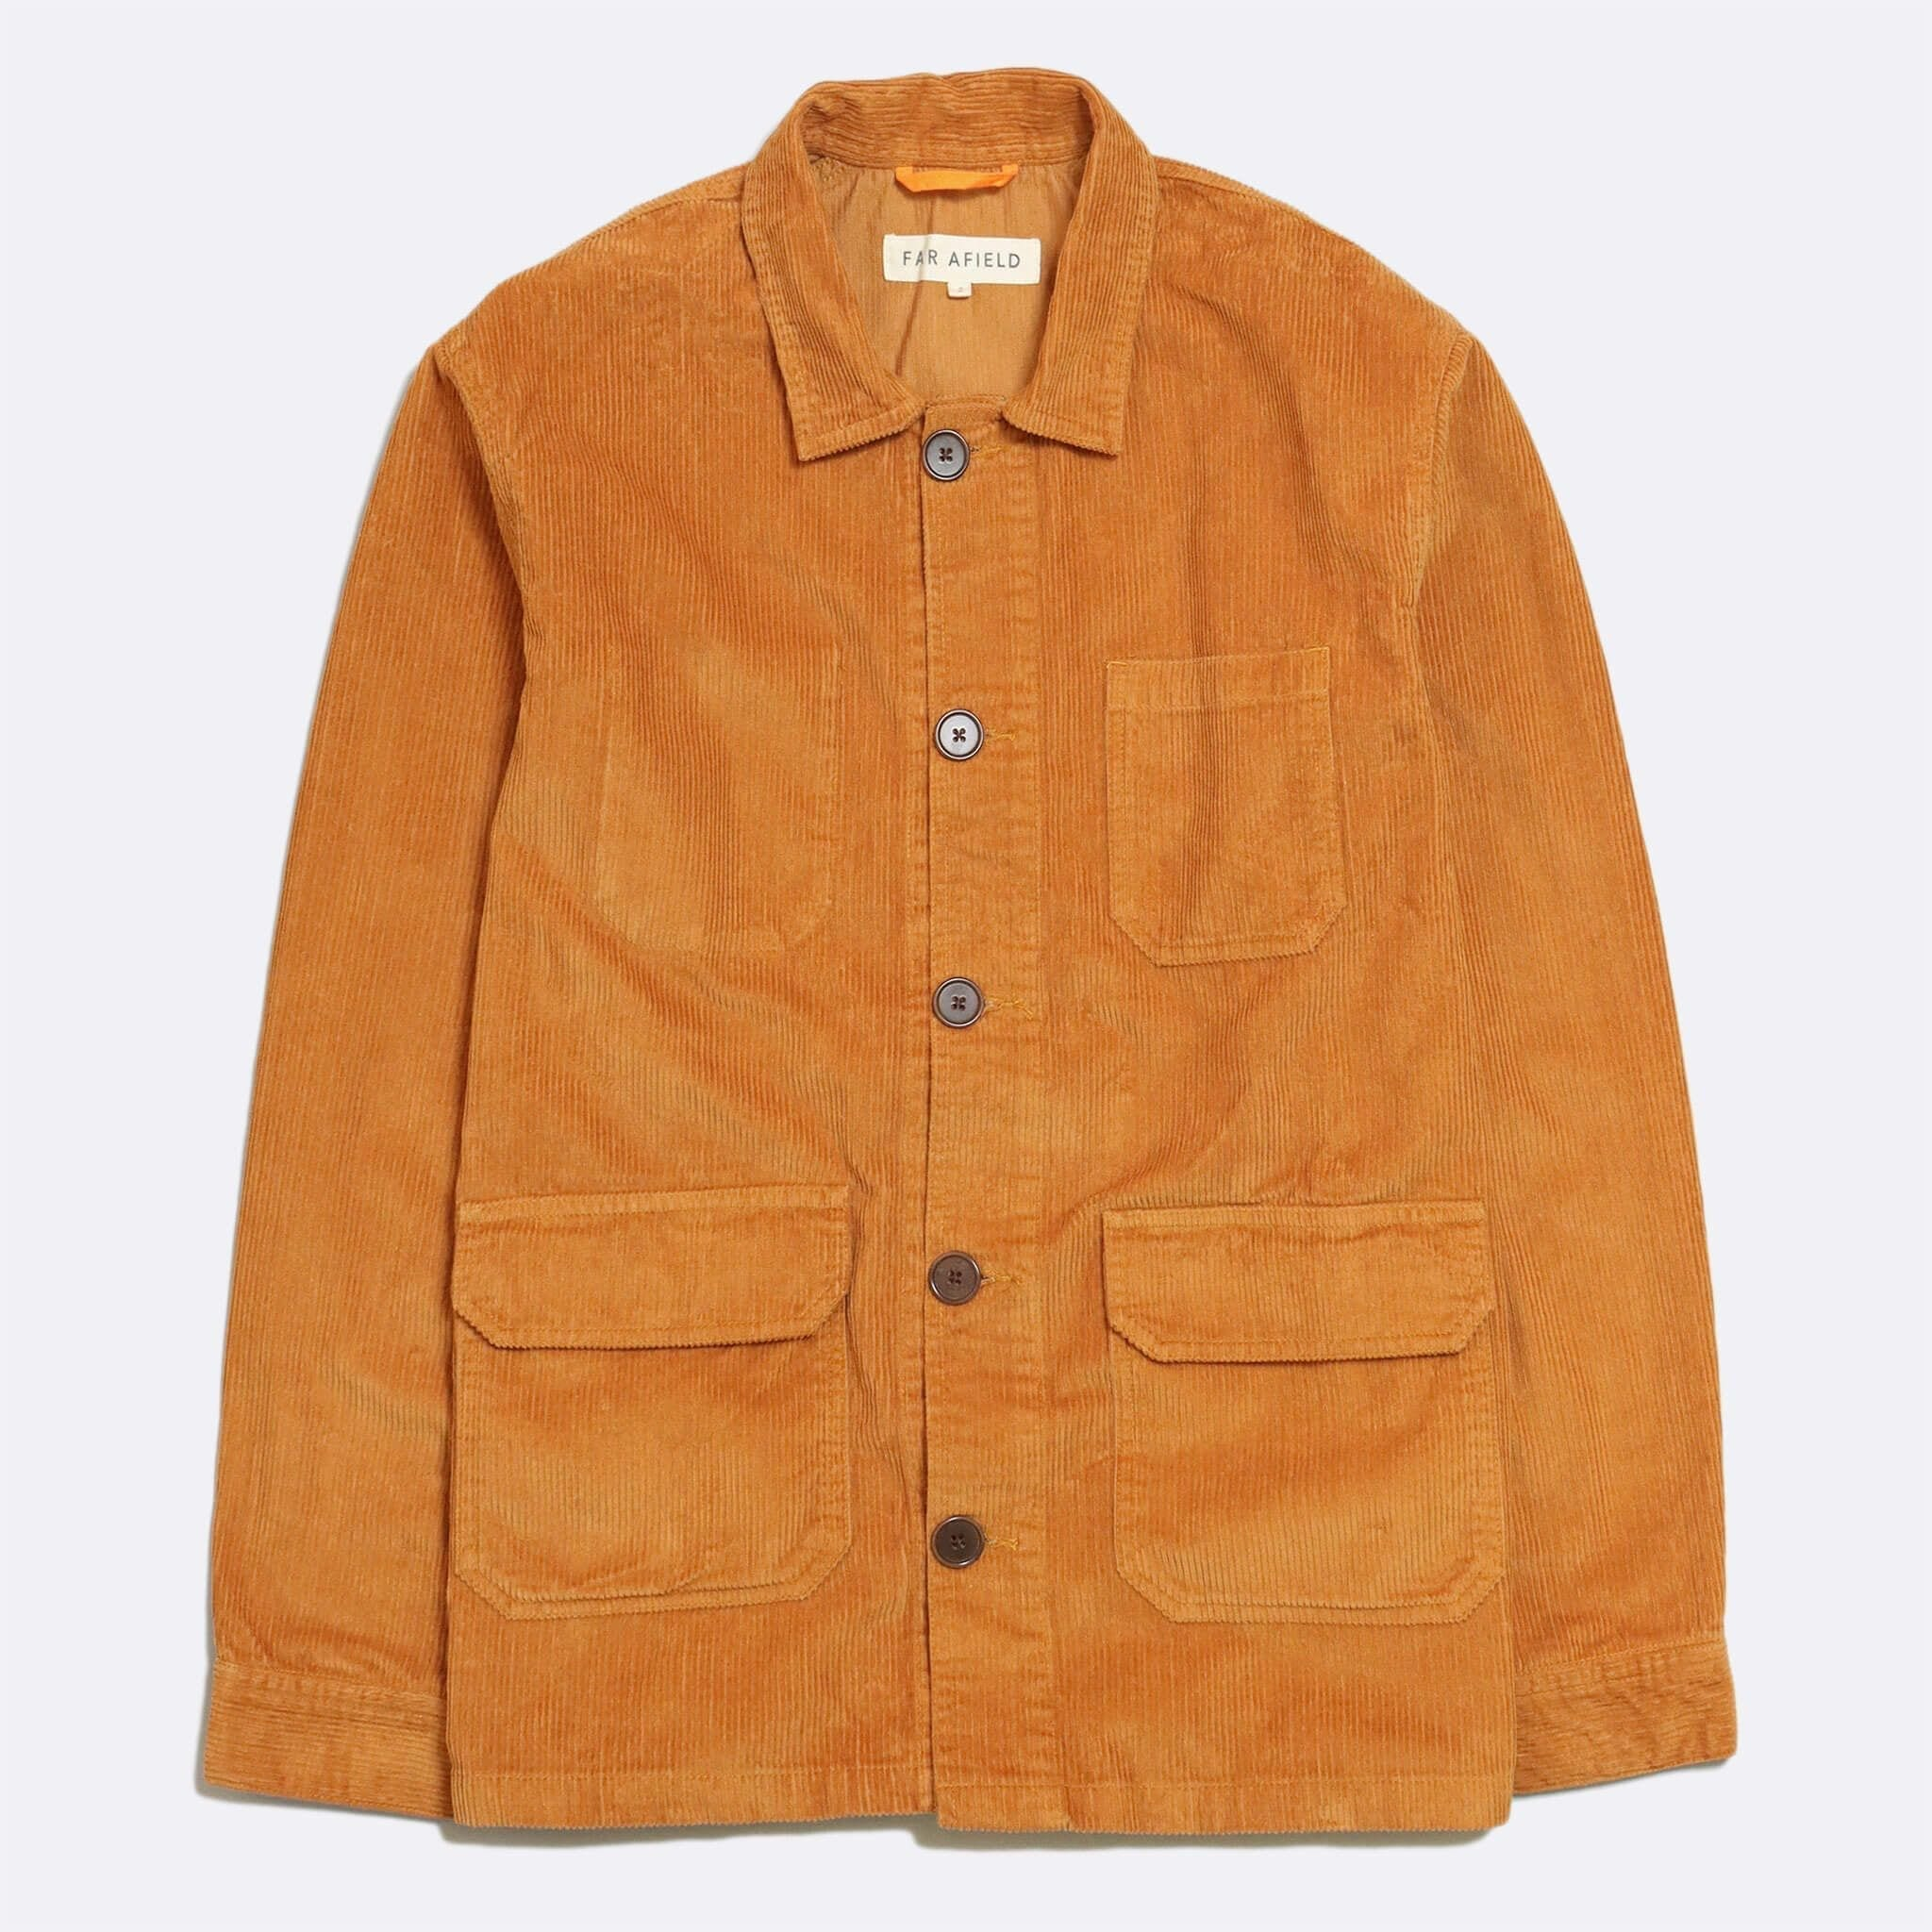 Far Afield Porter Jacket a Orange Organic Cotton Twill Fabric Utility Overshirt Casual Work